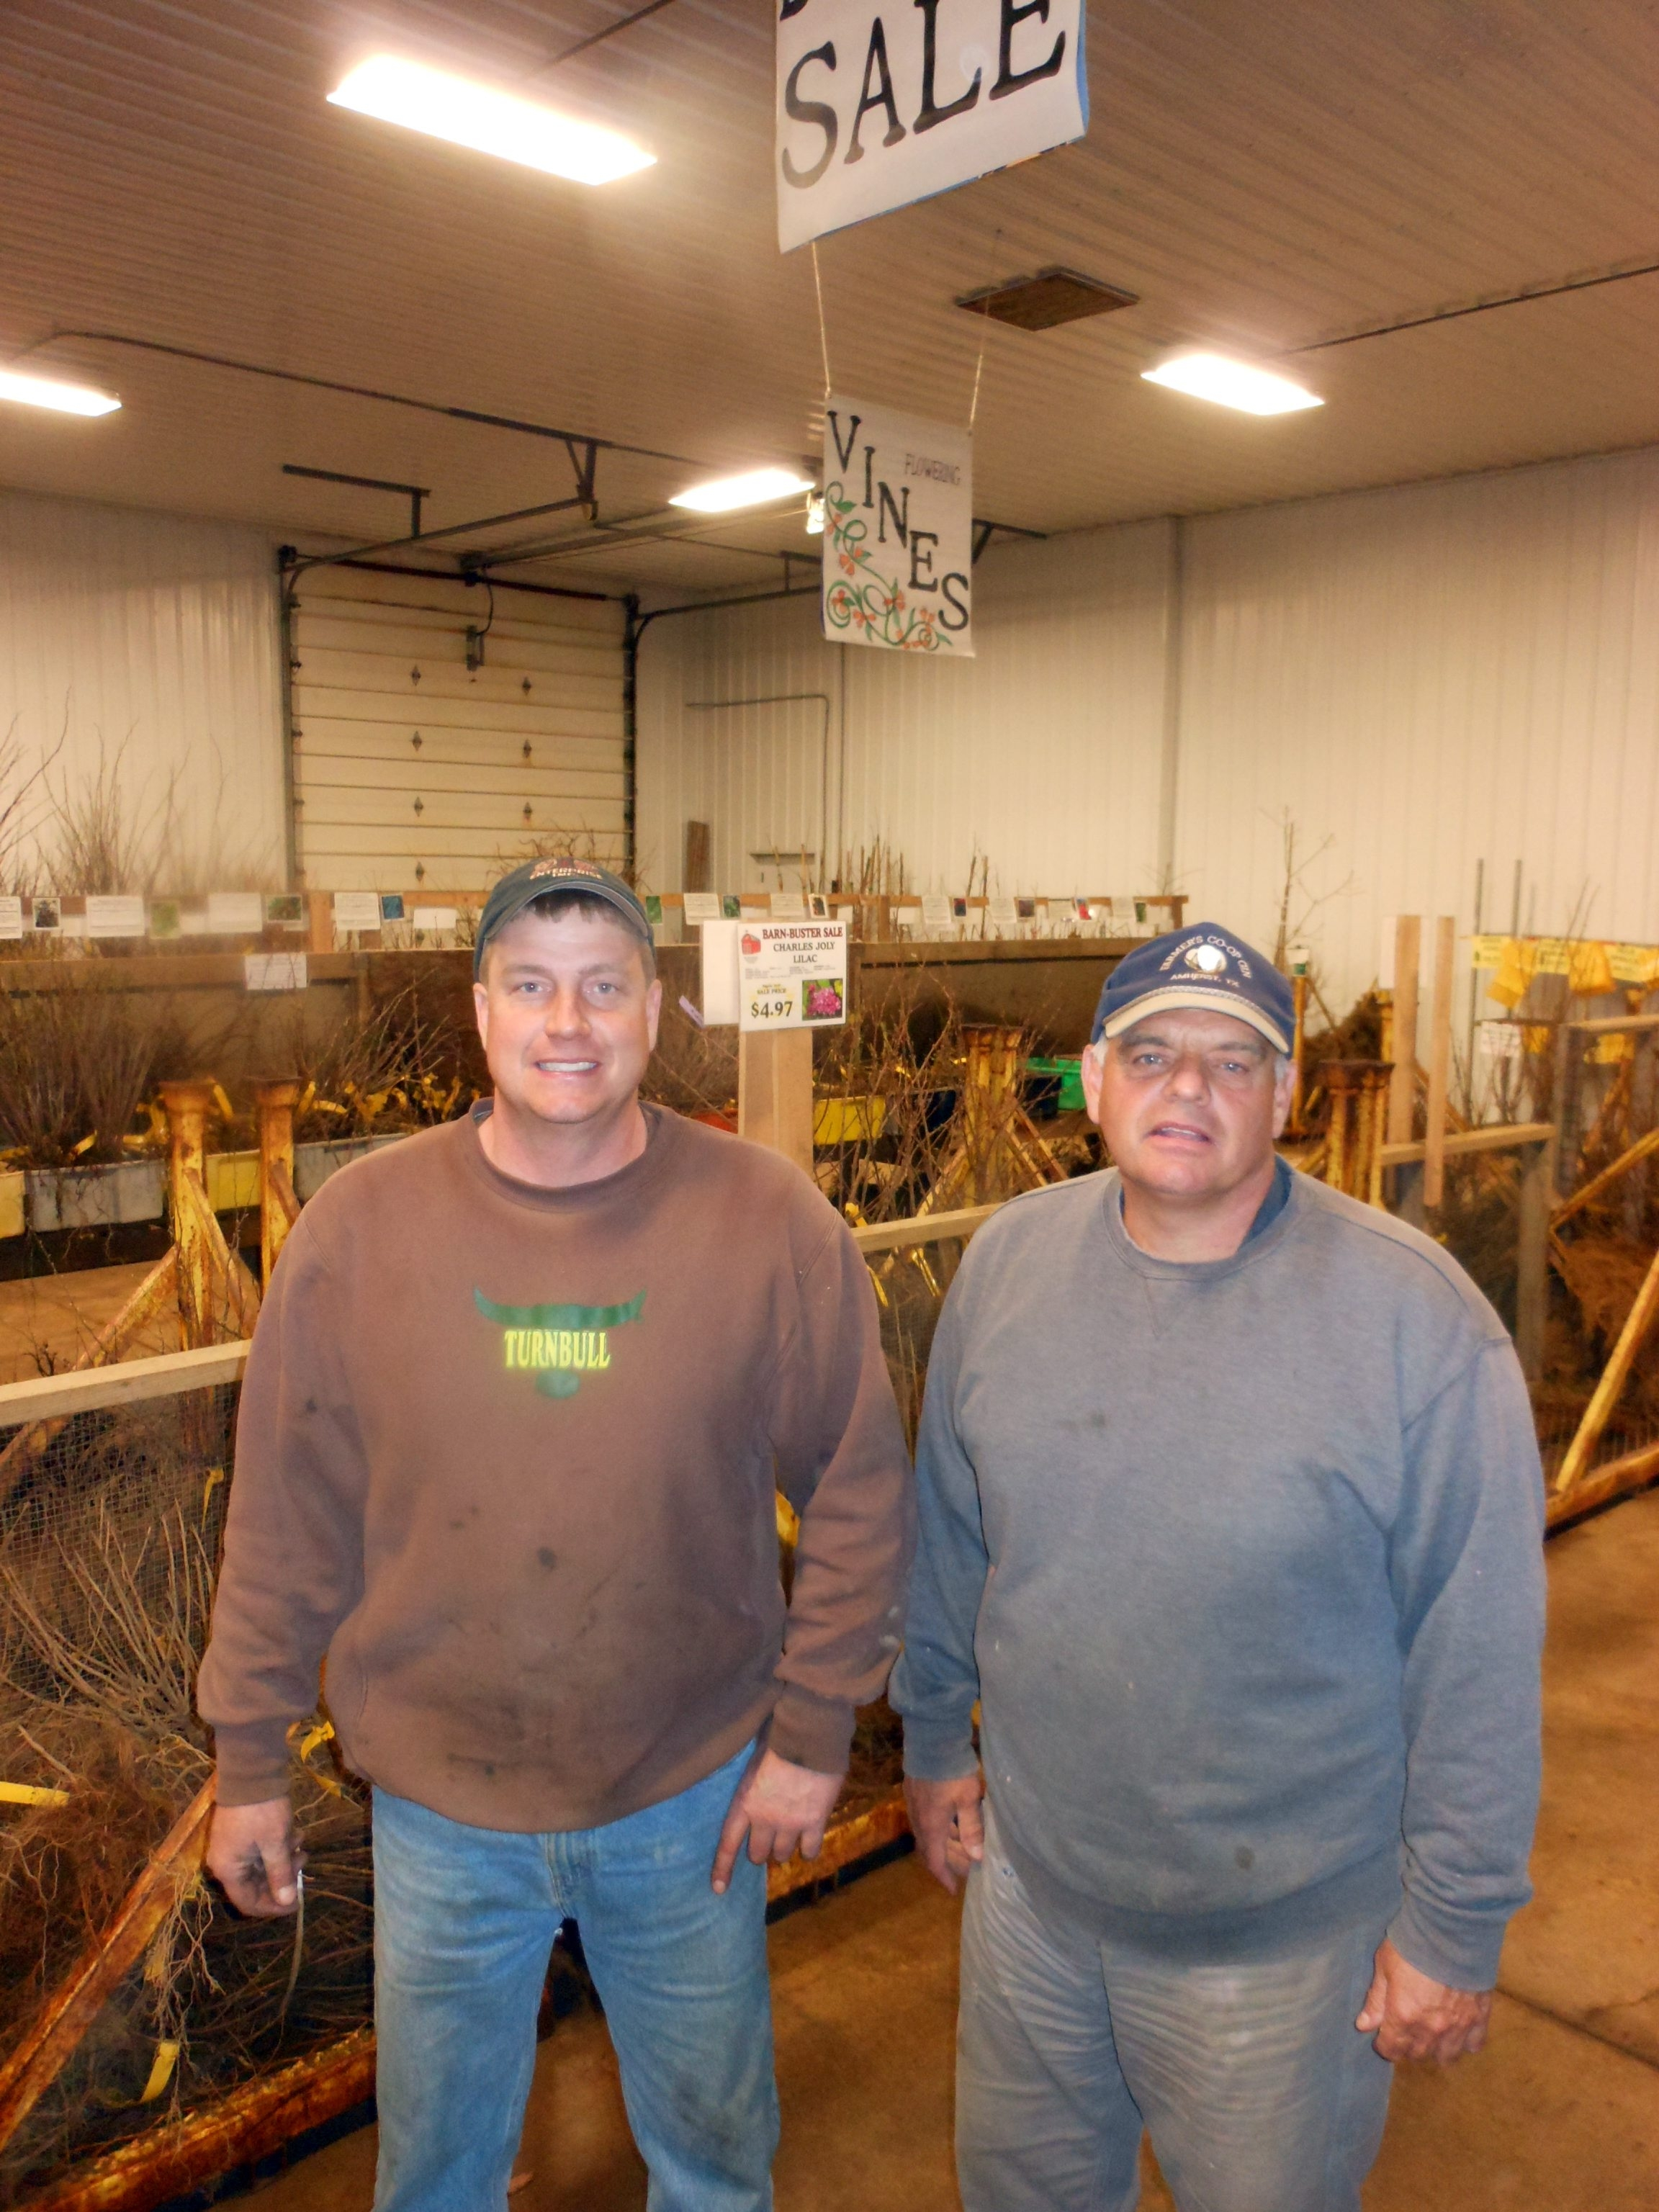 Rob and Bob Turnbull get things growing at their nursery garden center in North Collins.